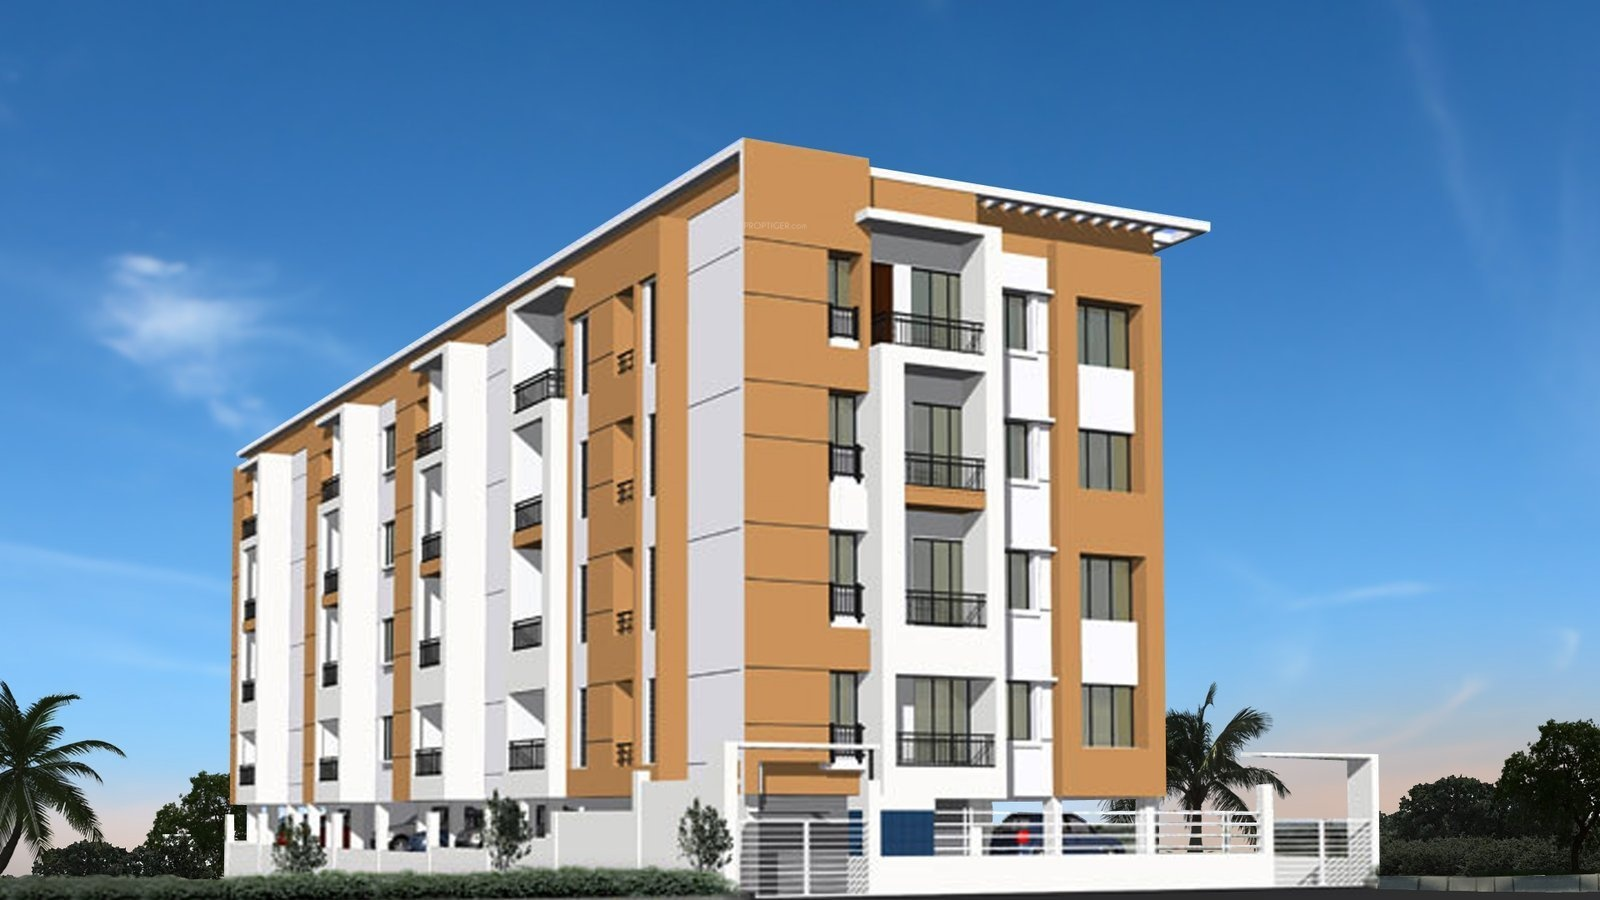 960 sq ft 2 BHK 2T Apartment for Sale in Future Homes ...